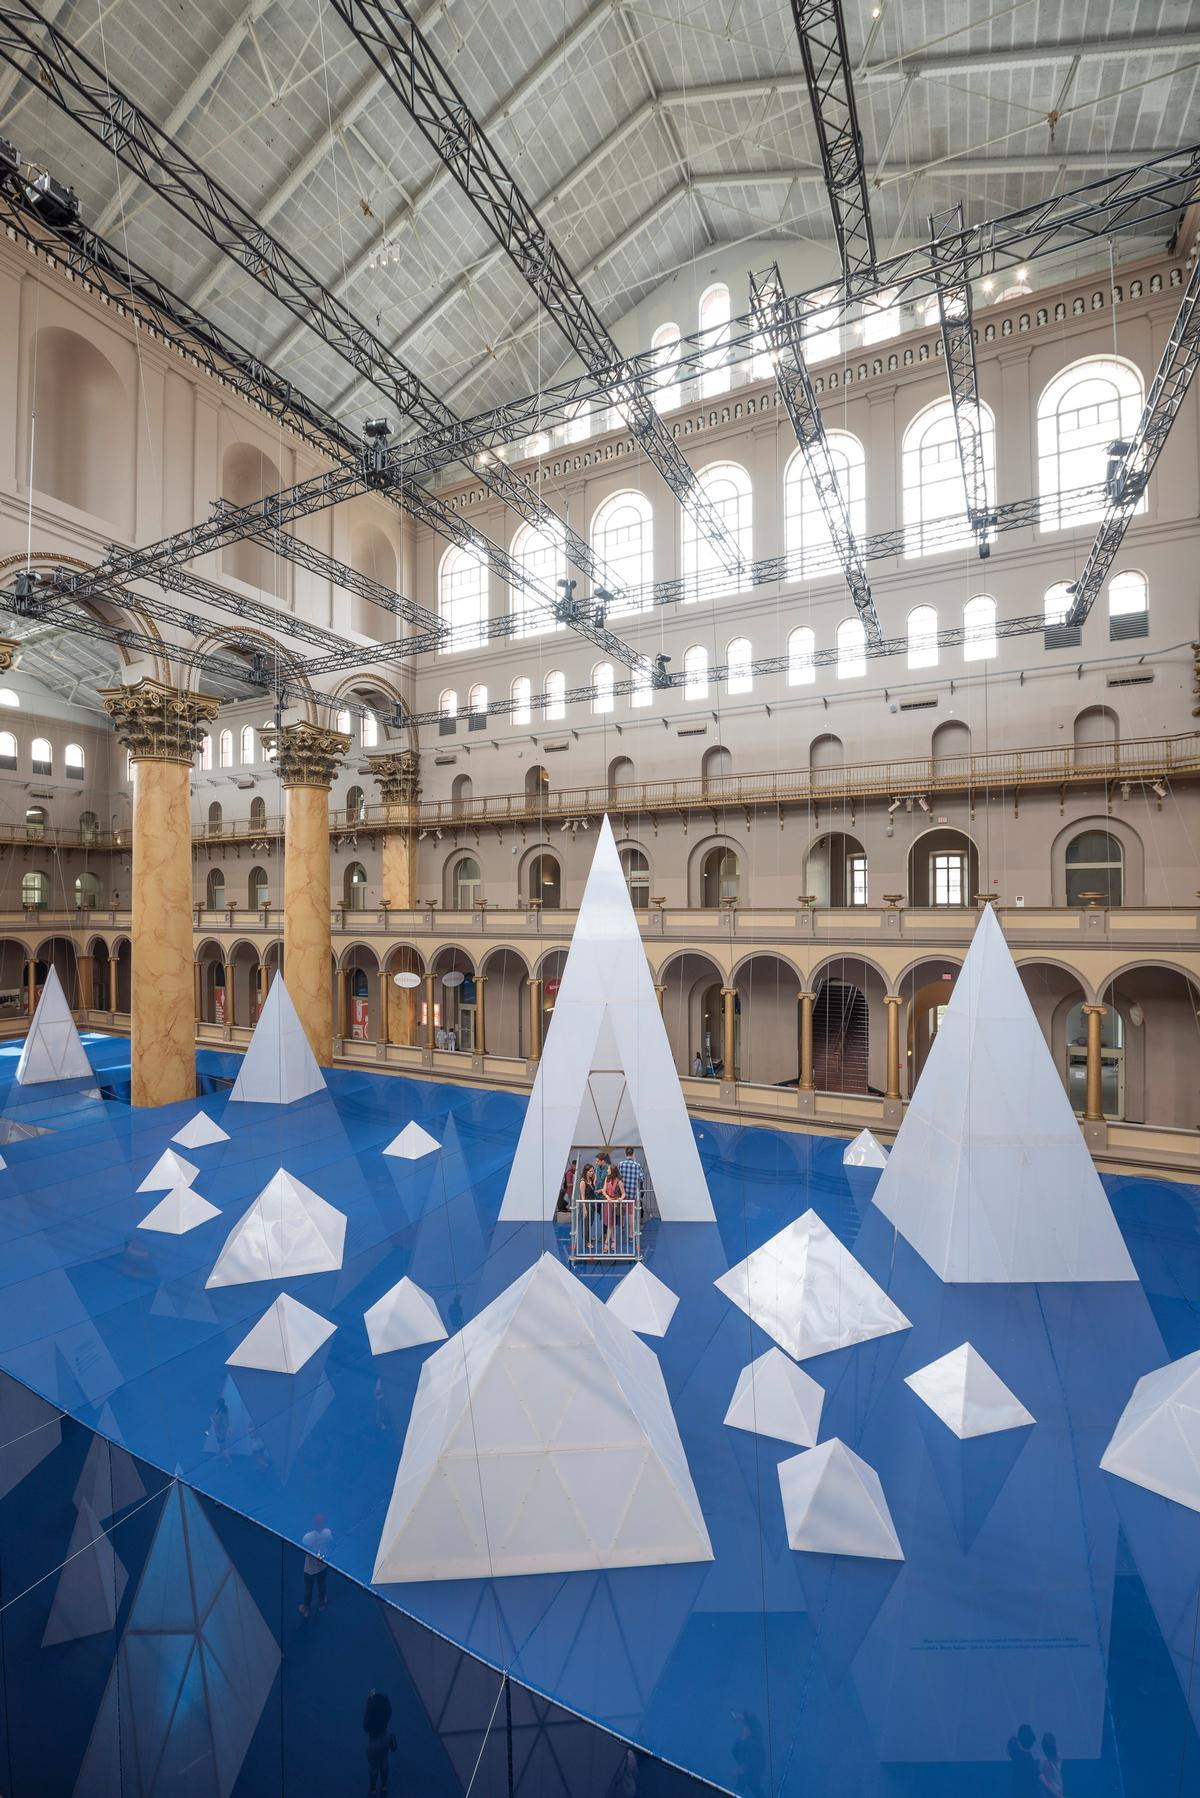 Visitors can climb to the top of the tallest iceberg / Timothy Schenck